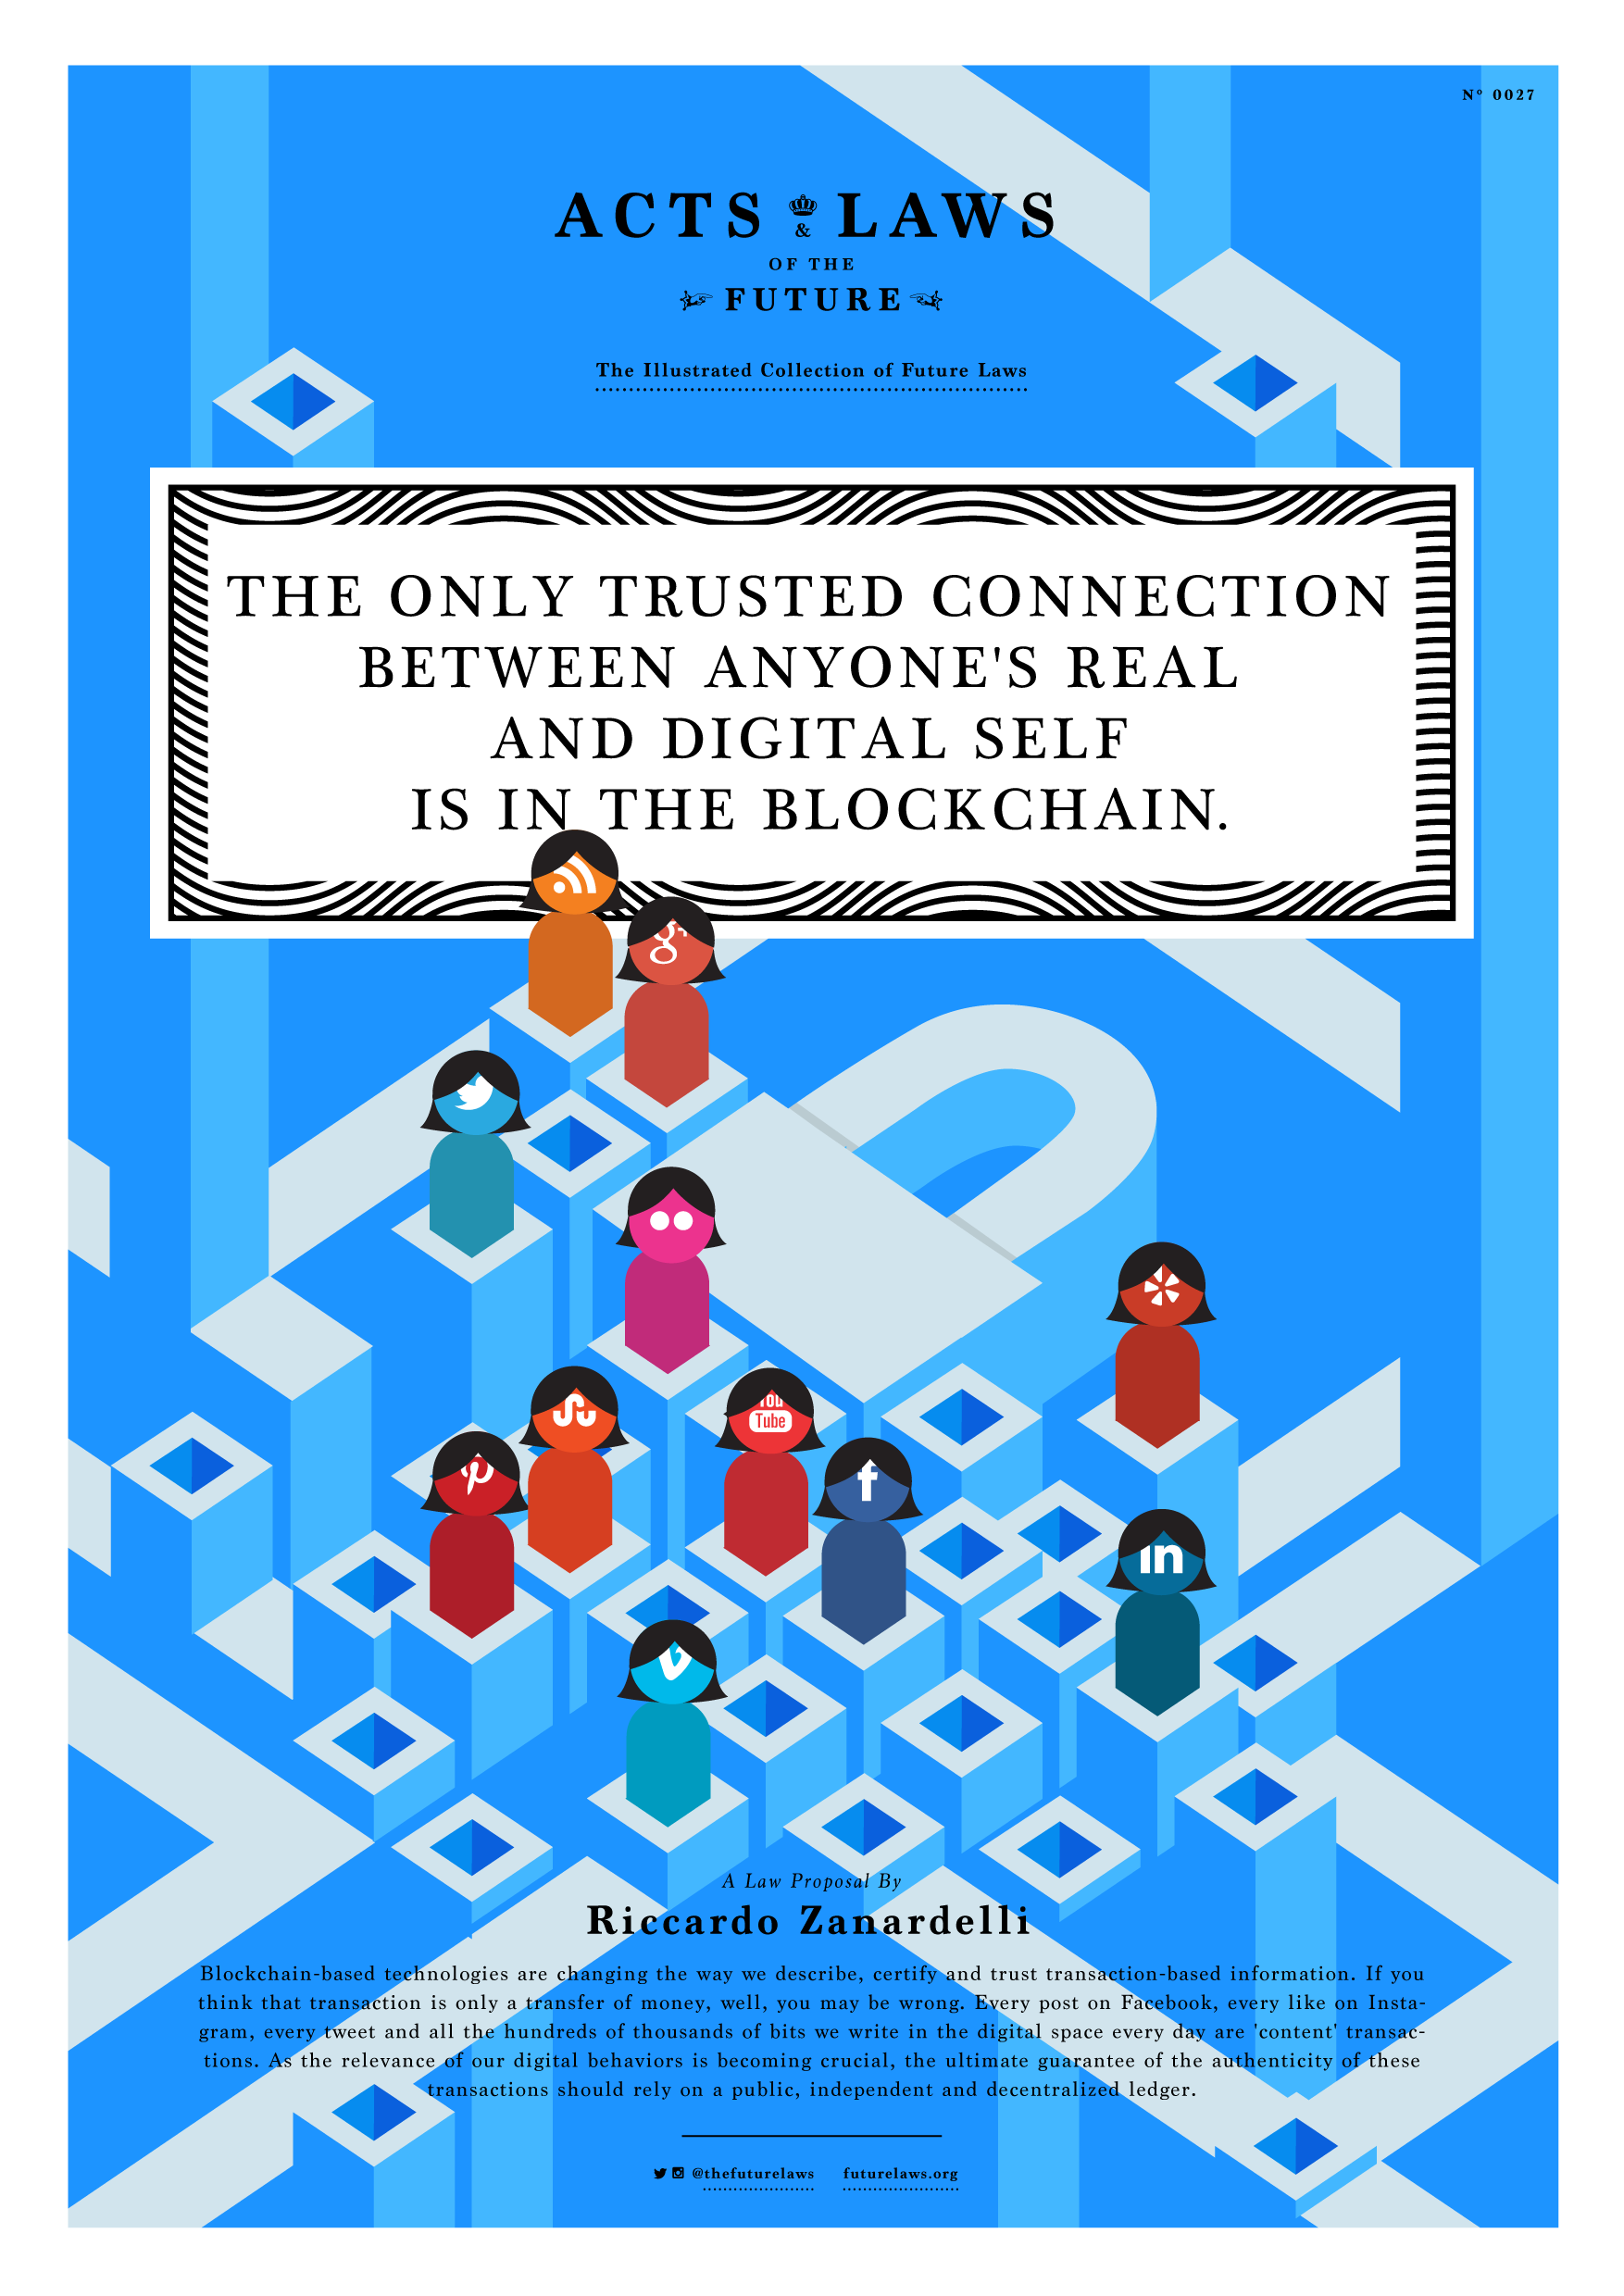 The only trusted connection  between anyone's real and digital self is in the blockchain.